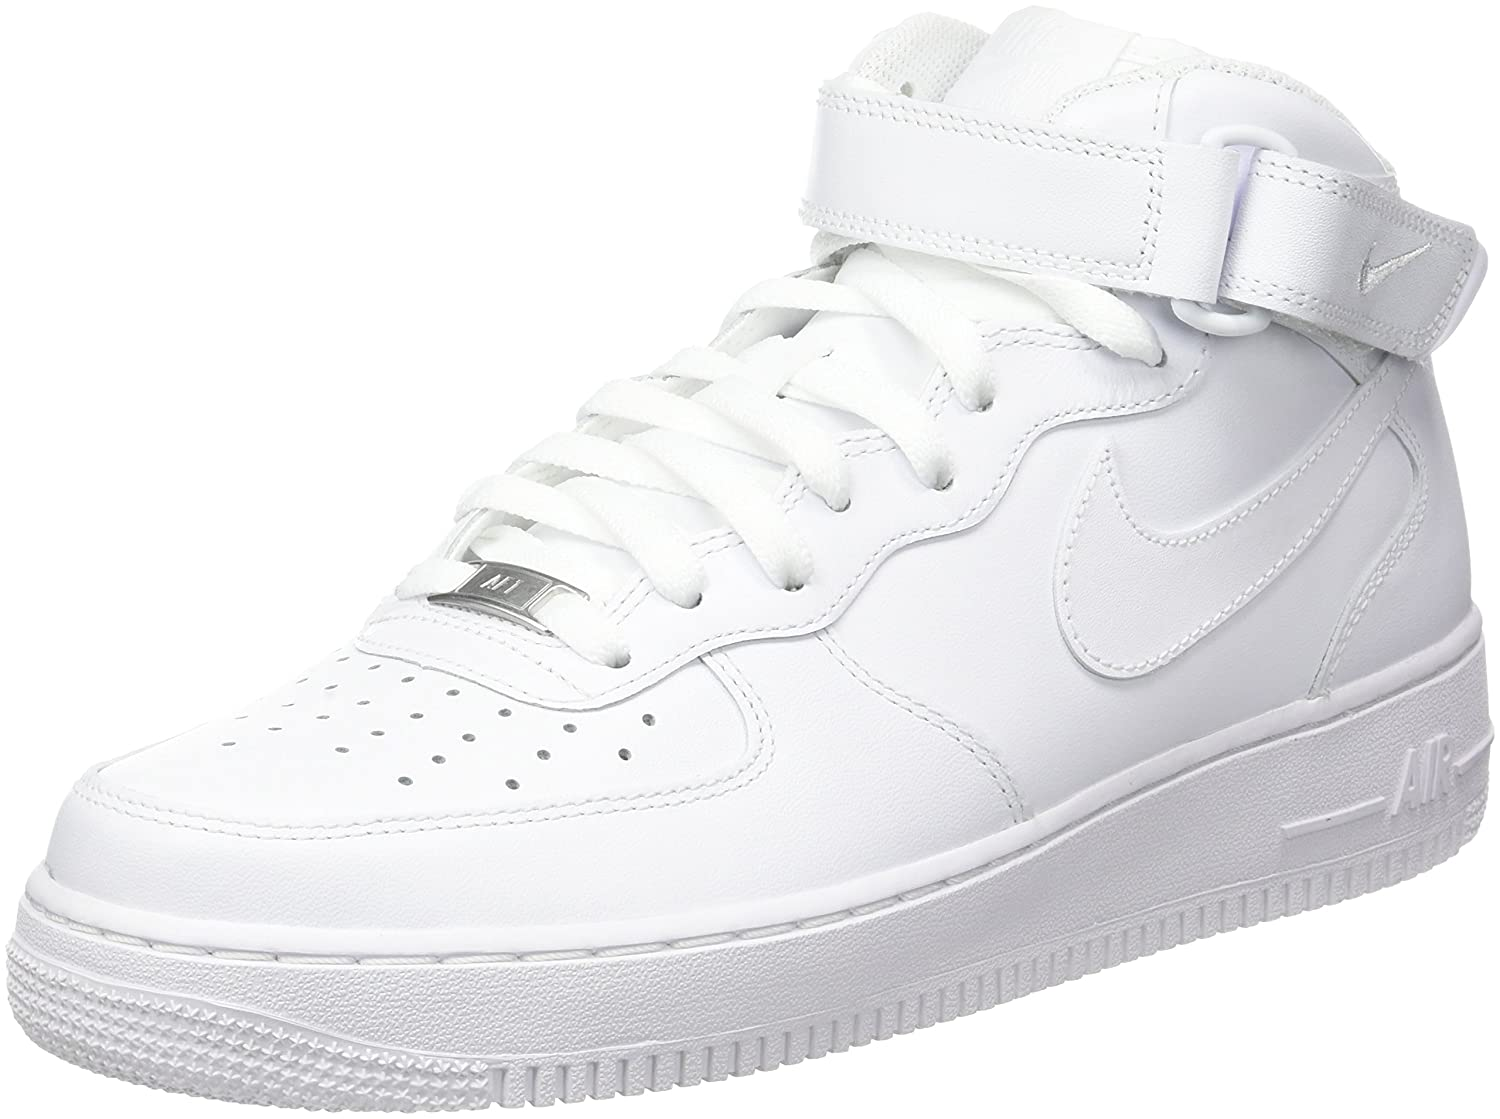 Nike Men s Air Force 1 Mid 07 Hi-Top Slippers  Amazon.co.uk  Shoes   Bags c4310be23